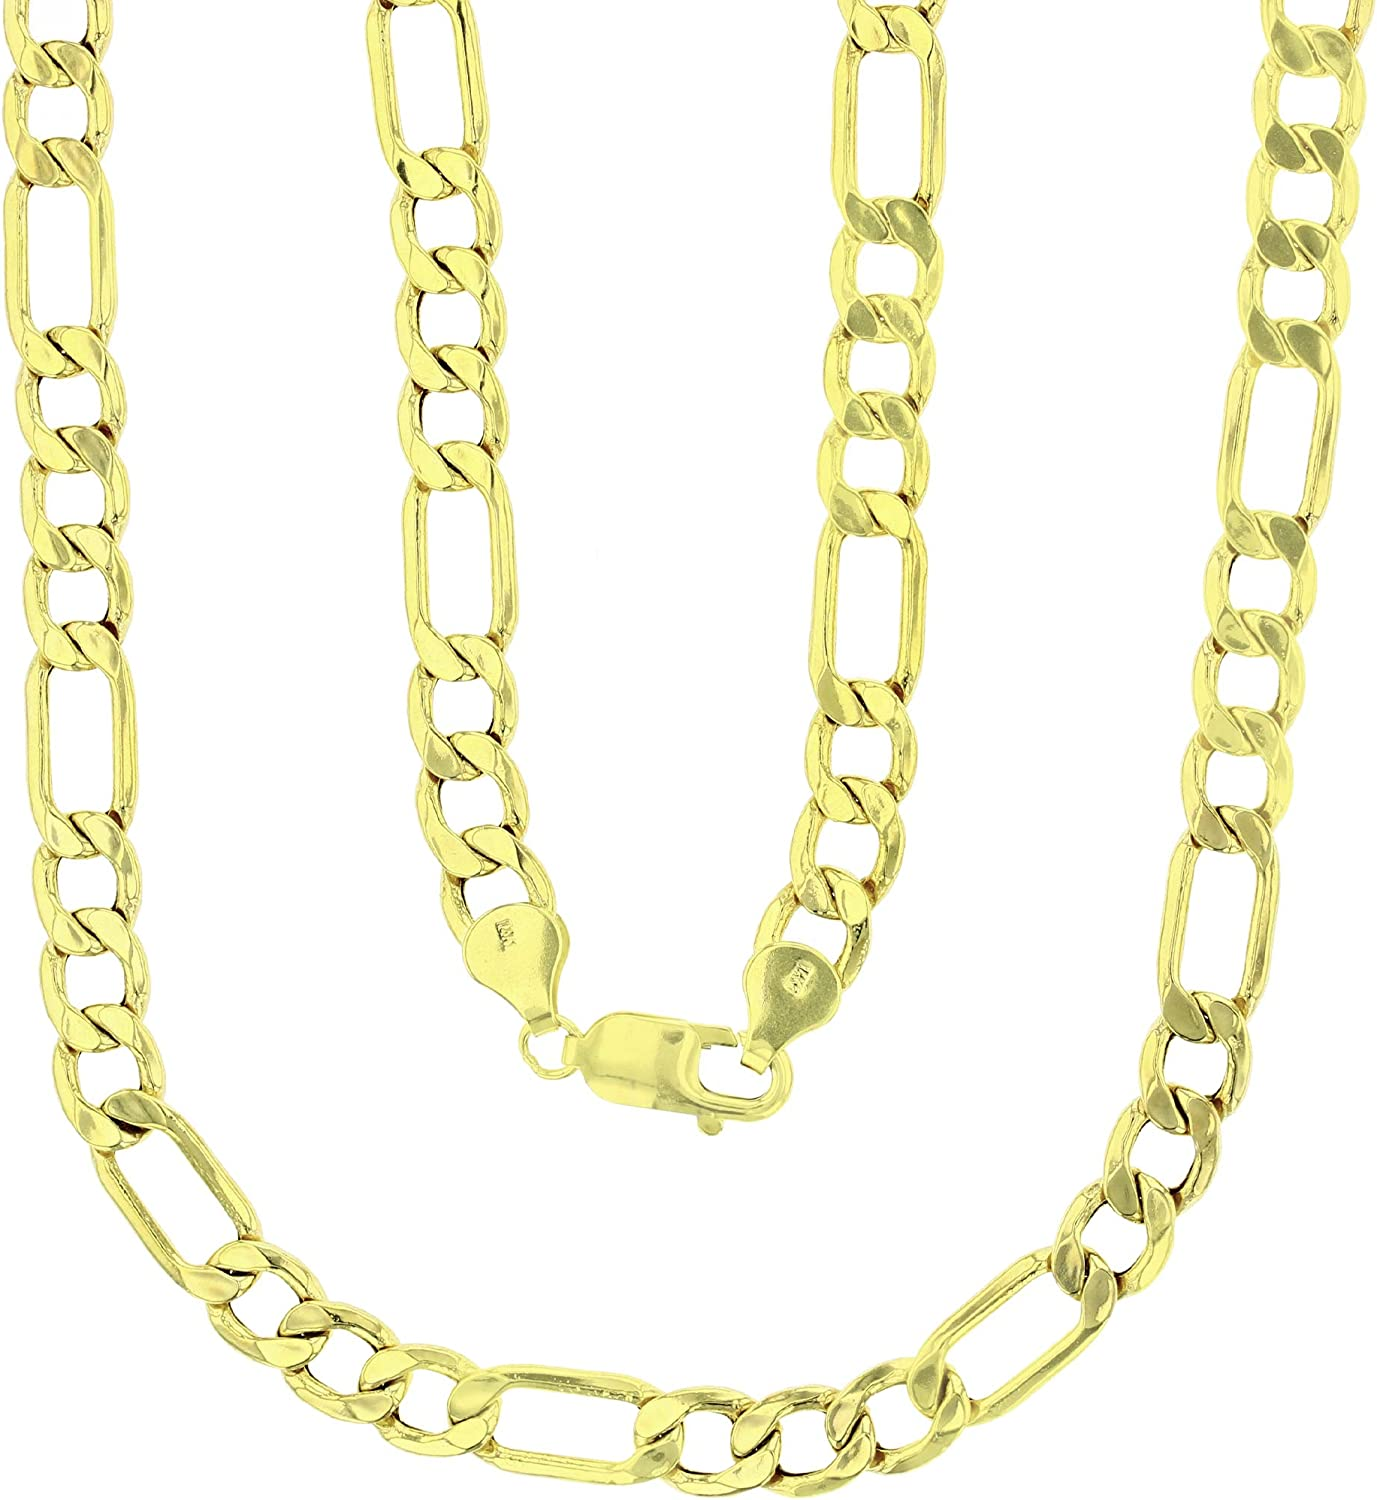 14k Yellow Gold Hollow 2mm-9mm ランキングTOP5 Figaro Chain with Cl 在庫一掃売り切りセール Lobster Claw